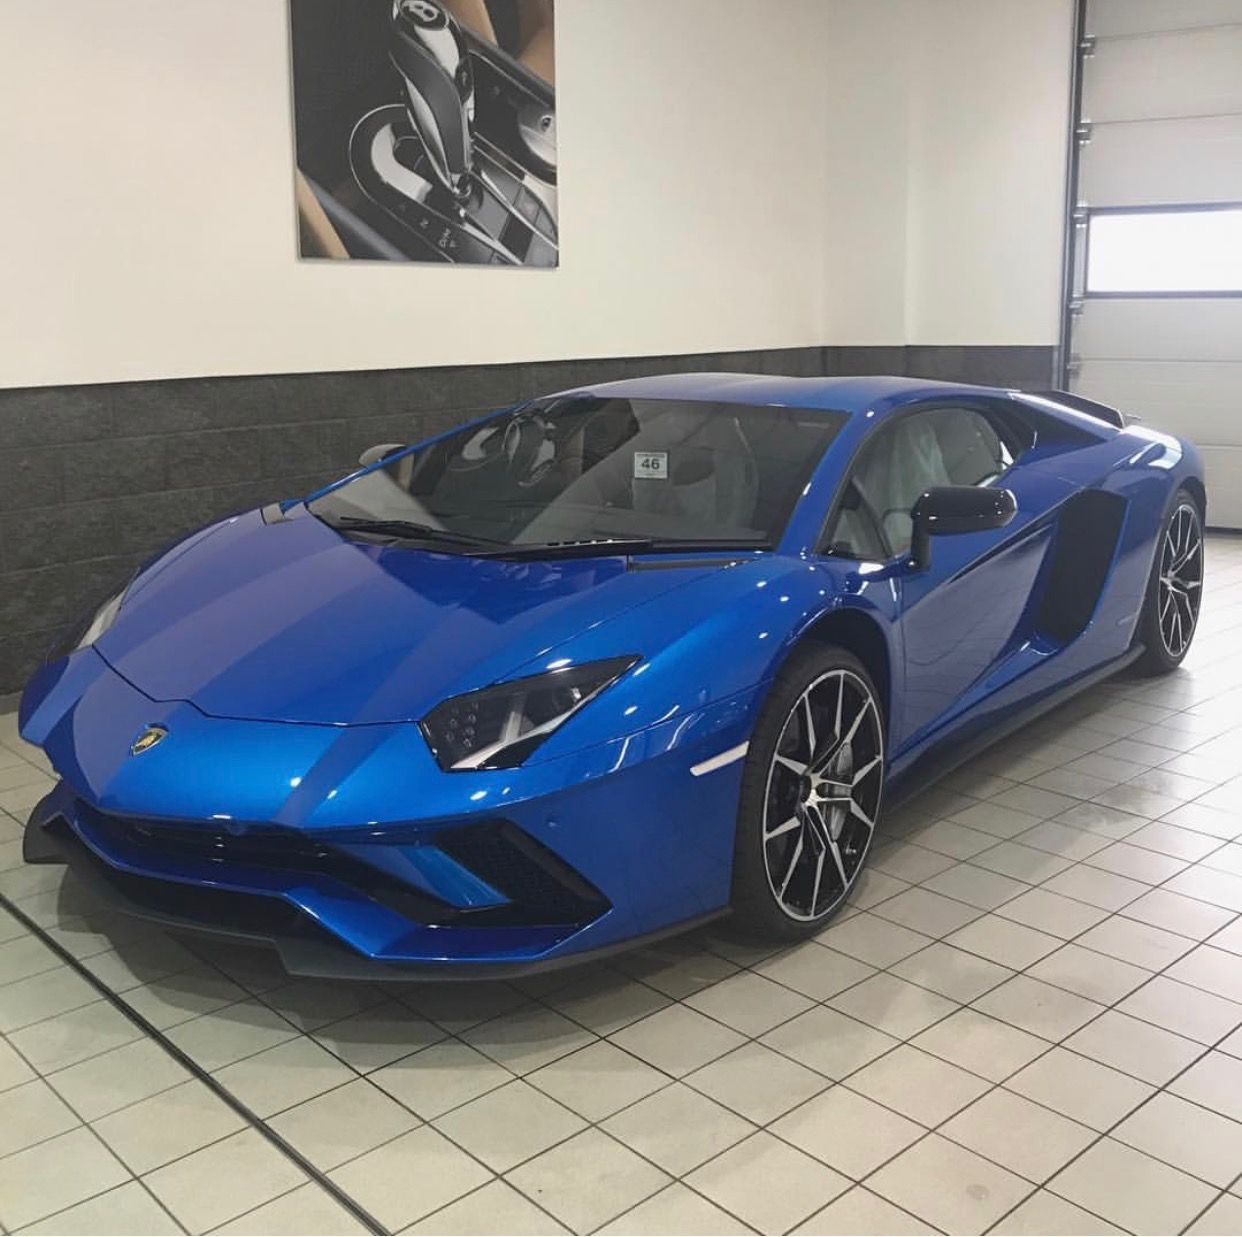 Lamborghini Aventador S Coupe Painted In Blue Nethuns Photo Taken By Invisifilm On Instagram